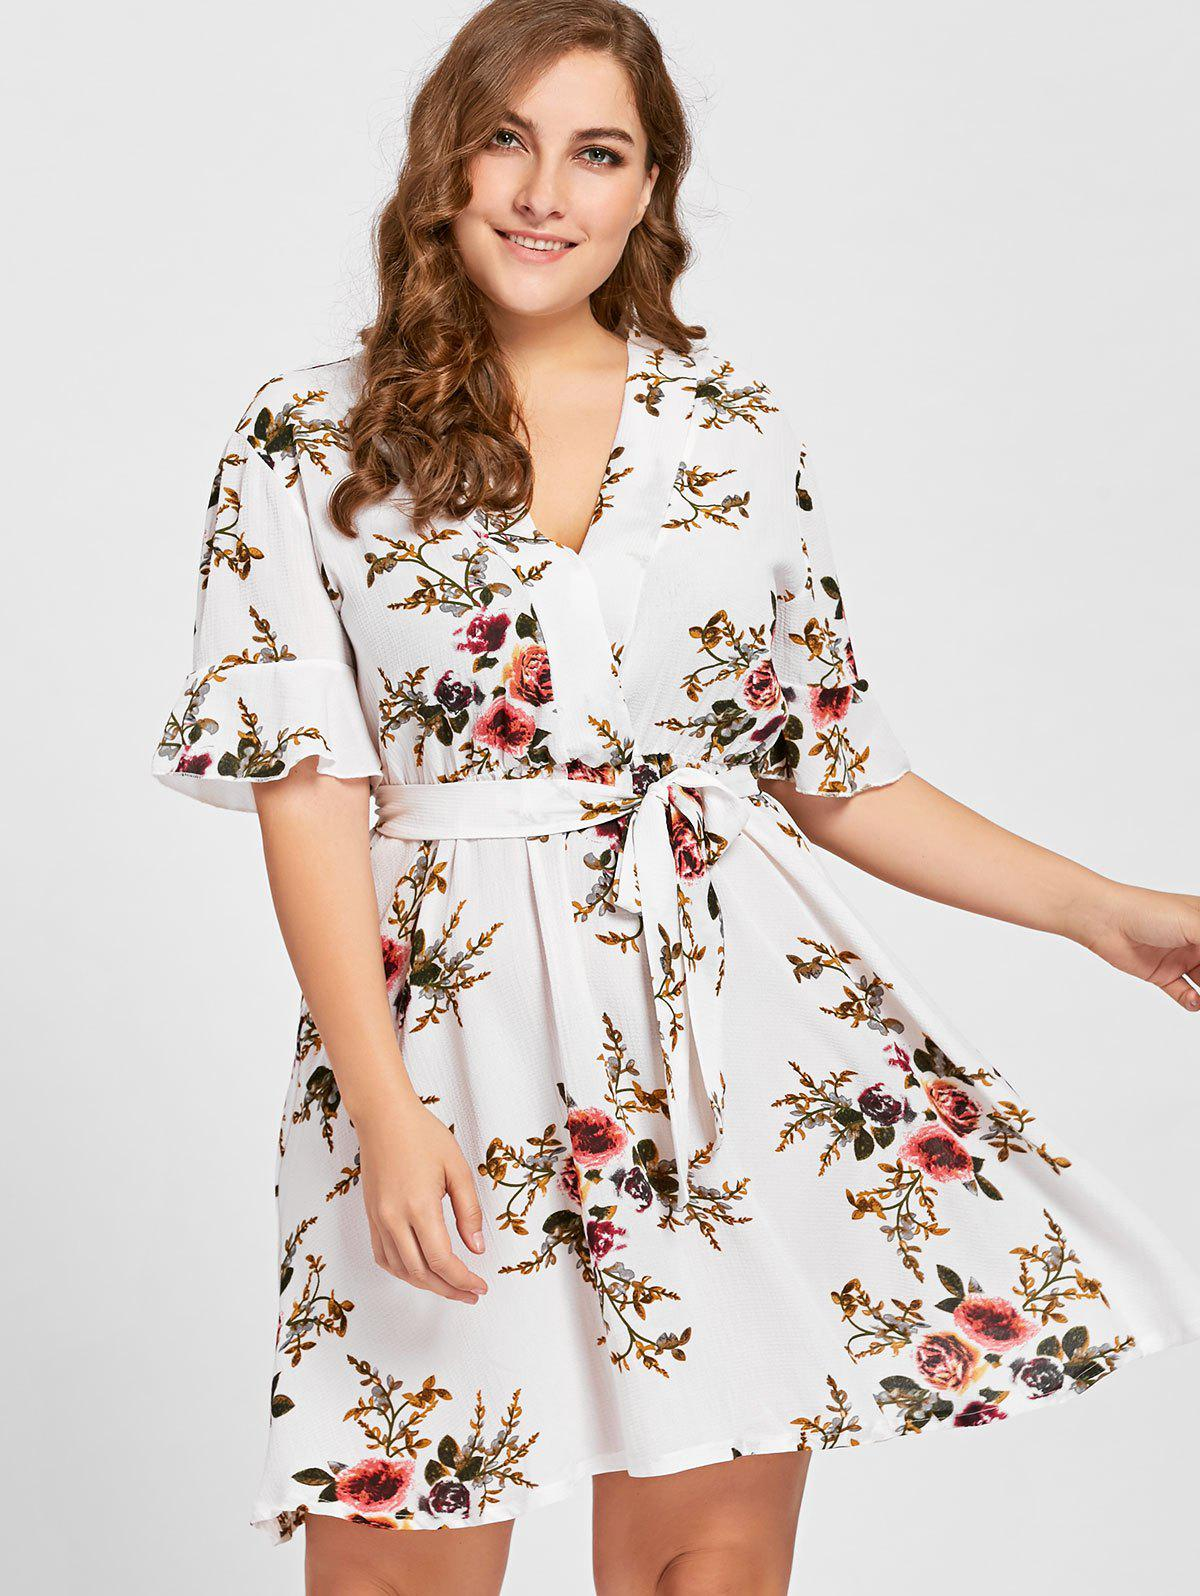 Floral Plus Size Belted DressWOMEN<br><br>Size: XL; Color: WHITE; Style: Casual; Material: Polyester; Silhouette: A-Line; Dresses Length: Mini; Neckline: V-Neck; Sleeve Length: Half Sleeves; Pattern Type: Floral; With Belt: Yes; Season: Fall; Weight: 0.2700kg; Package Contents: 1 x Dress  1 x Belt;